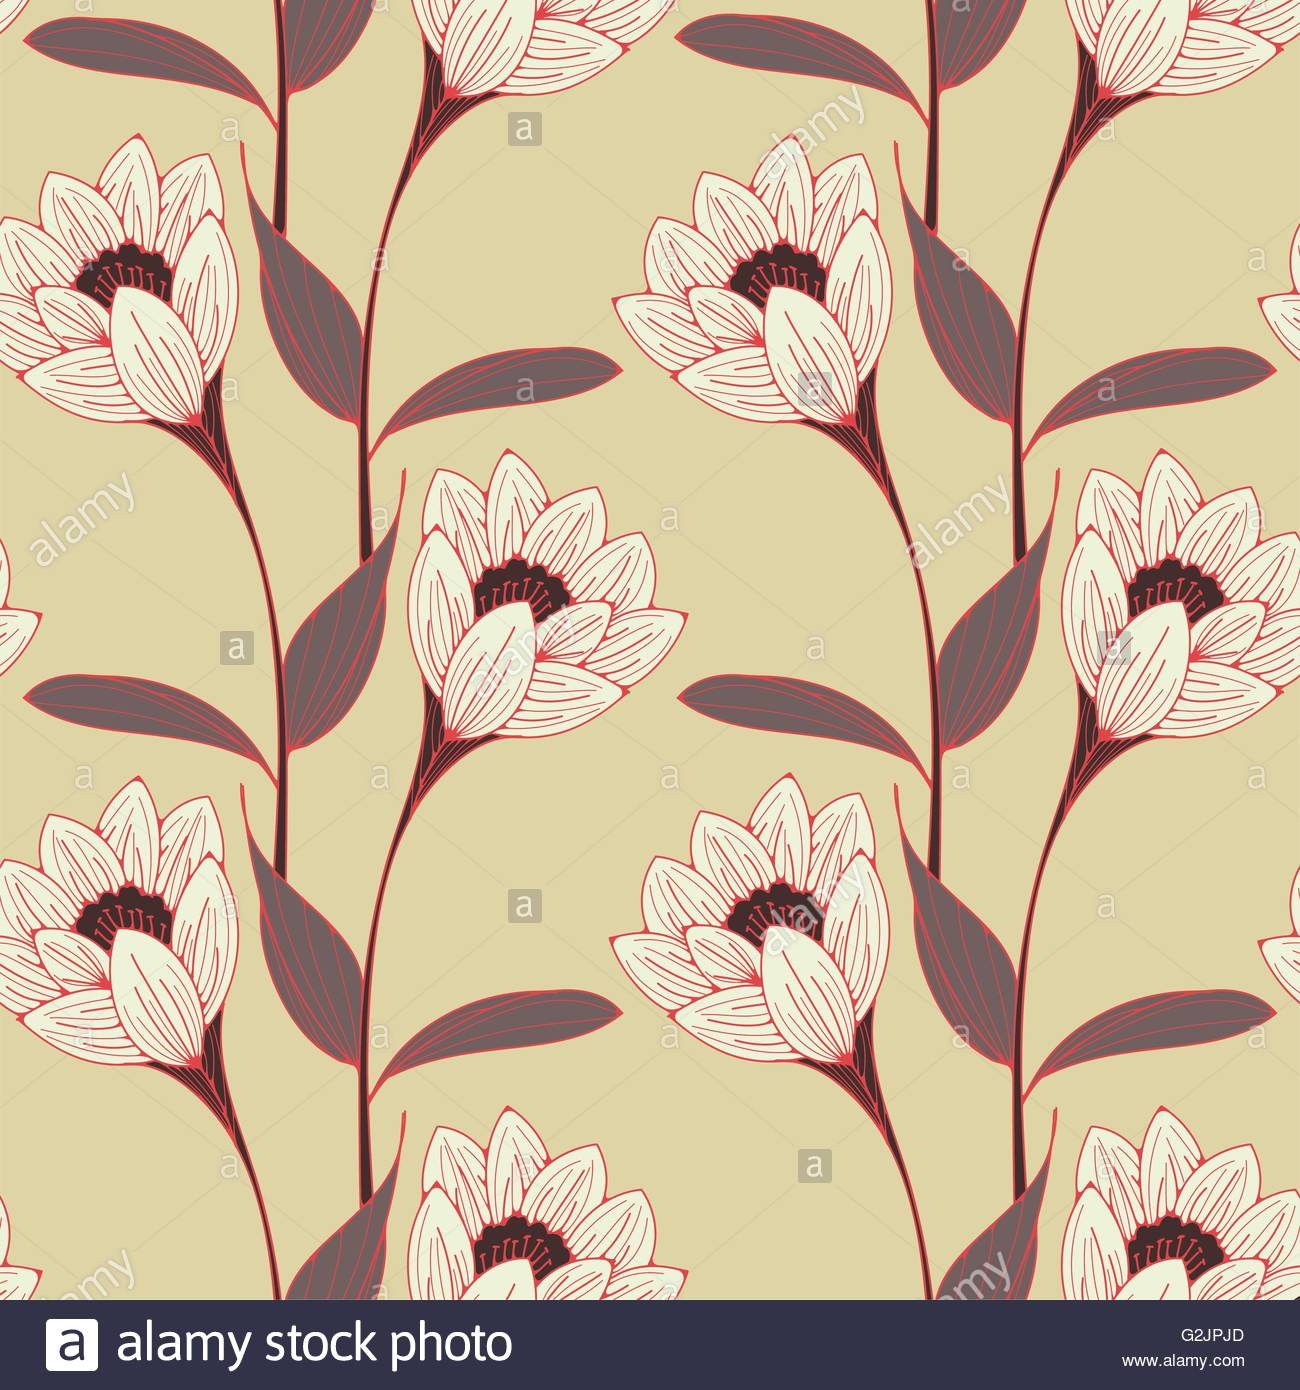 A Vintage English Style Floral Wallpaper Seamless Tiles With Stock